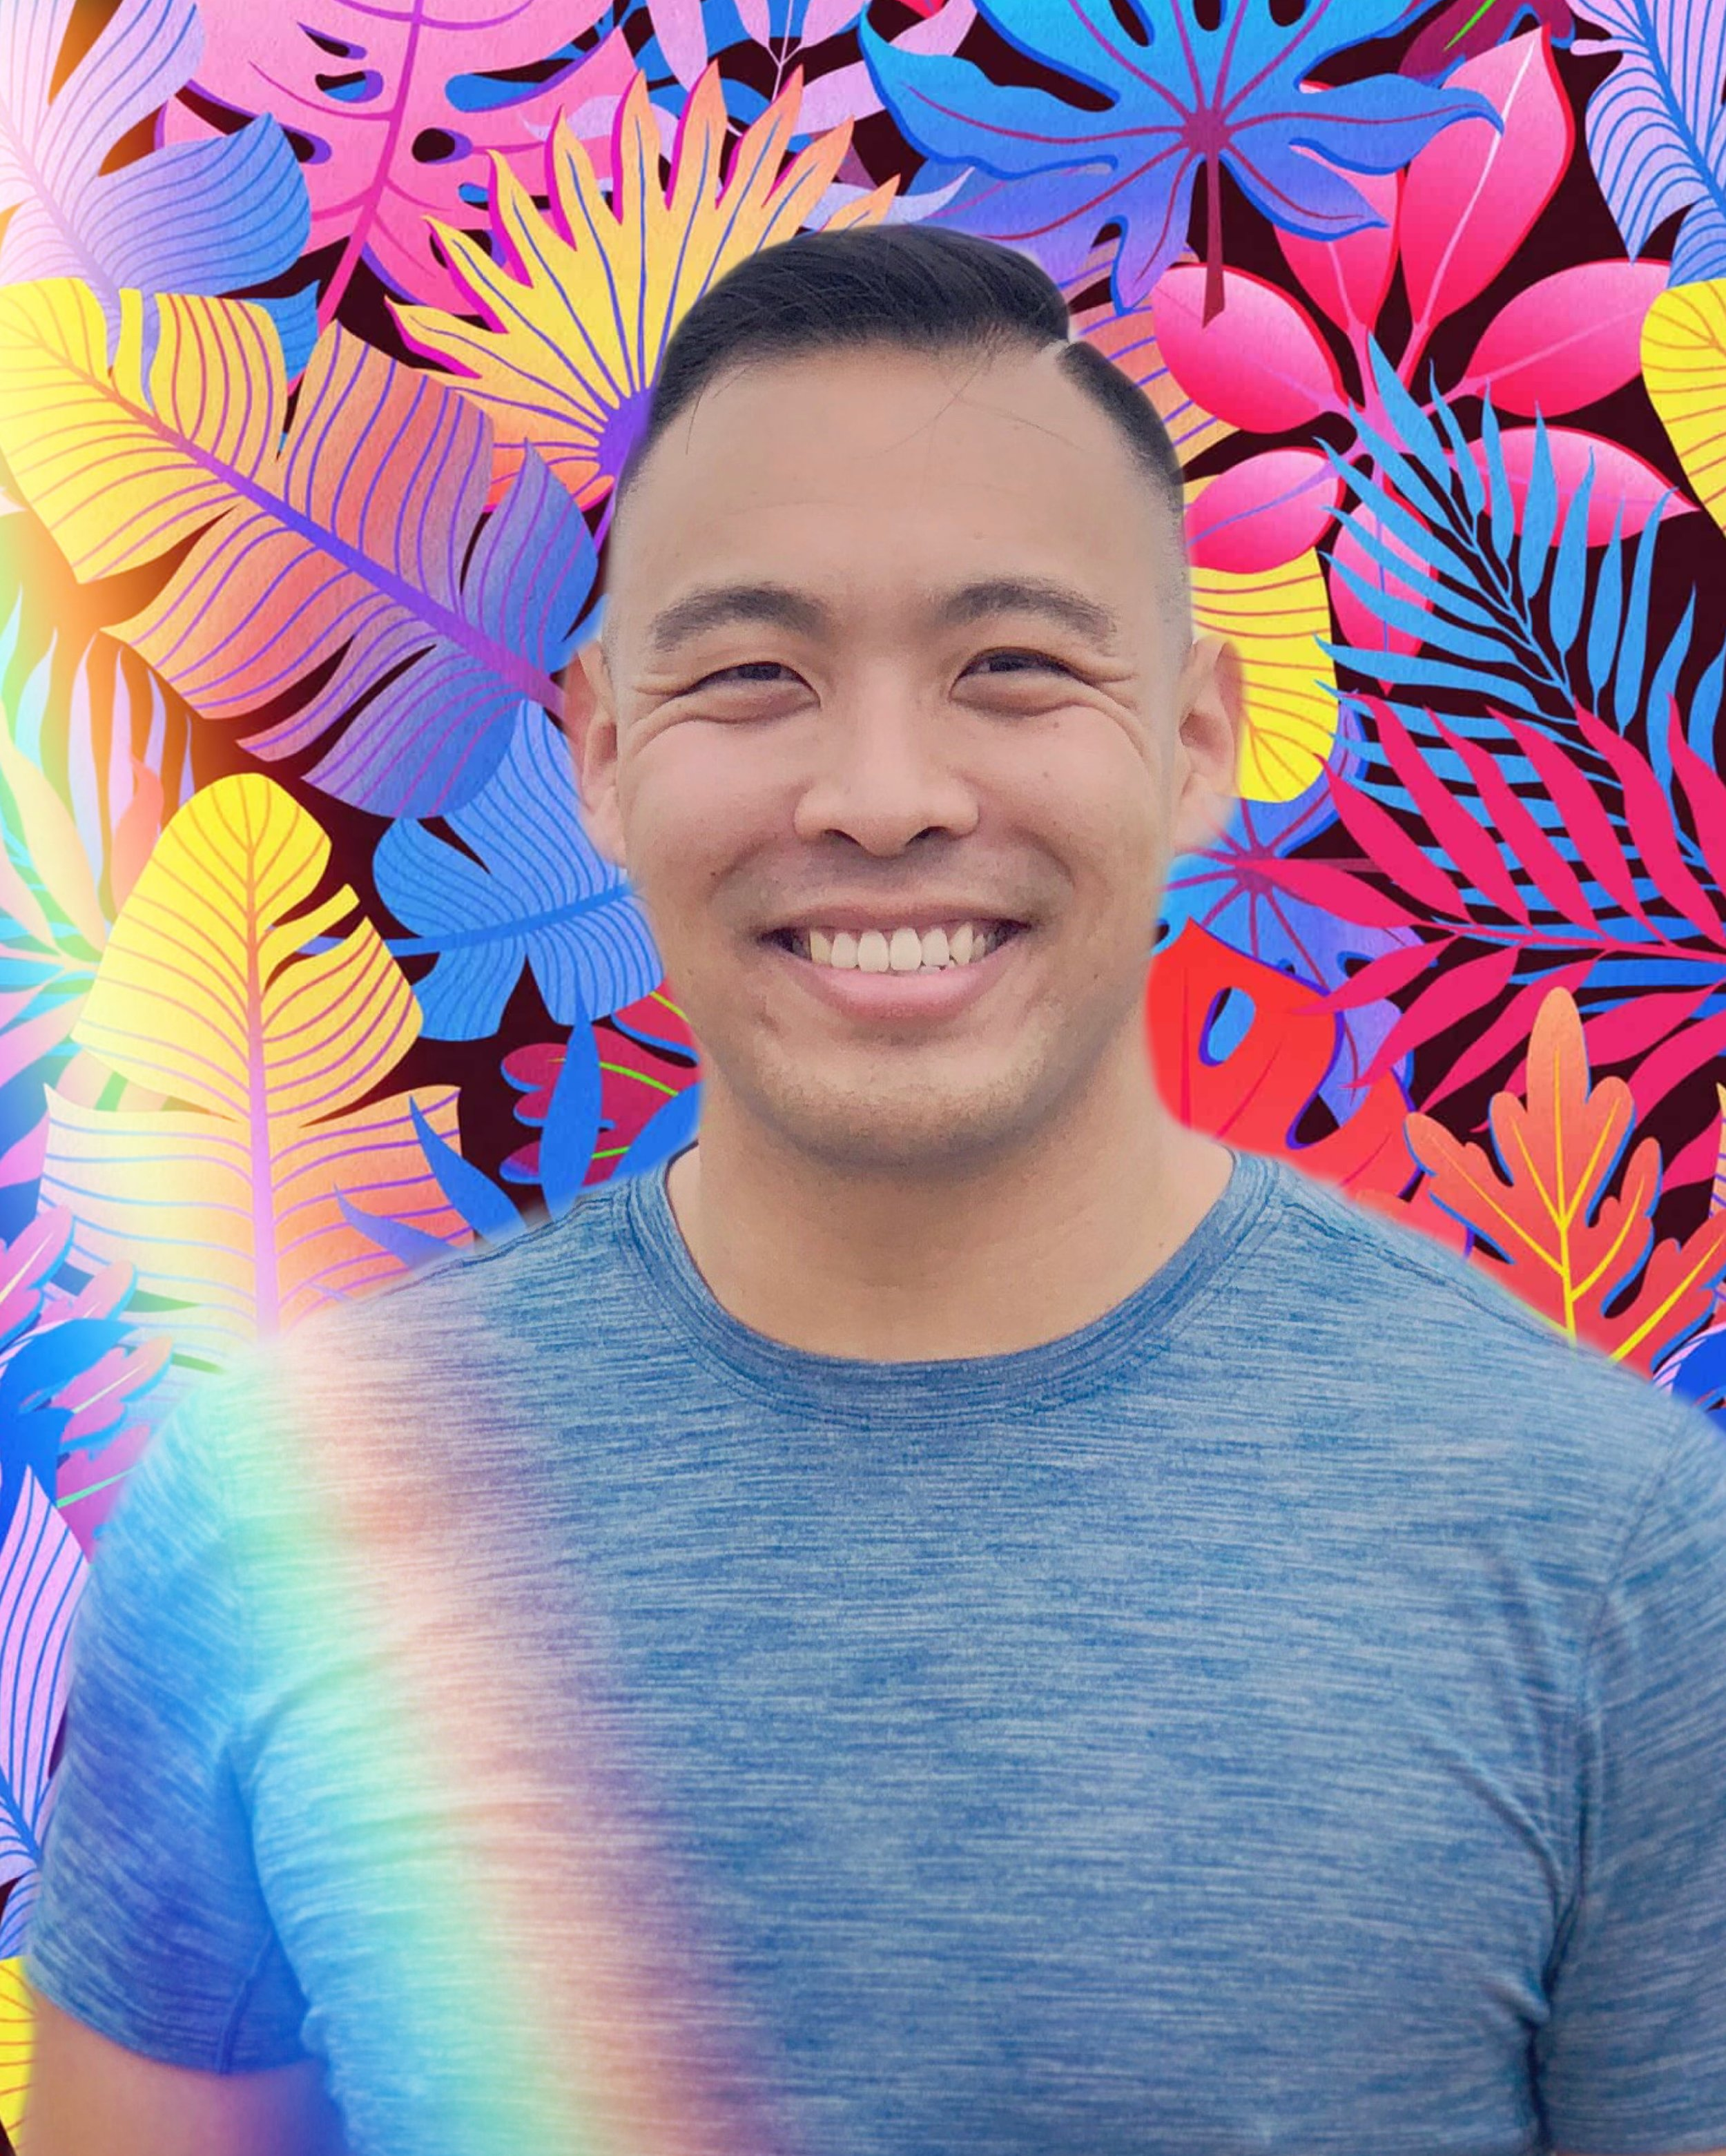 Ryan Cho - he/him/hisMore Americans are becoming accepting of LGBTQIA individuals, but this is not true for everyone across the country. I joined wayOUT so that queer youth, wherever they may be, are able to access a safe community for support and to shine their true colors.